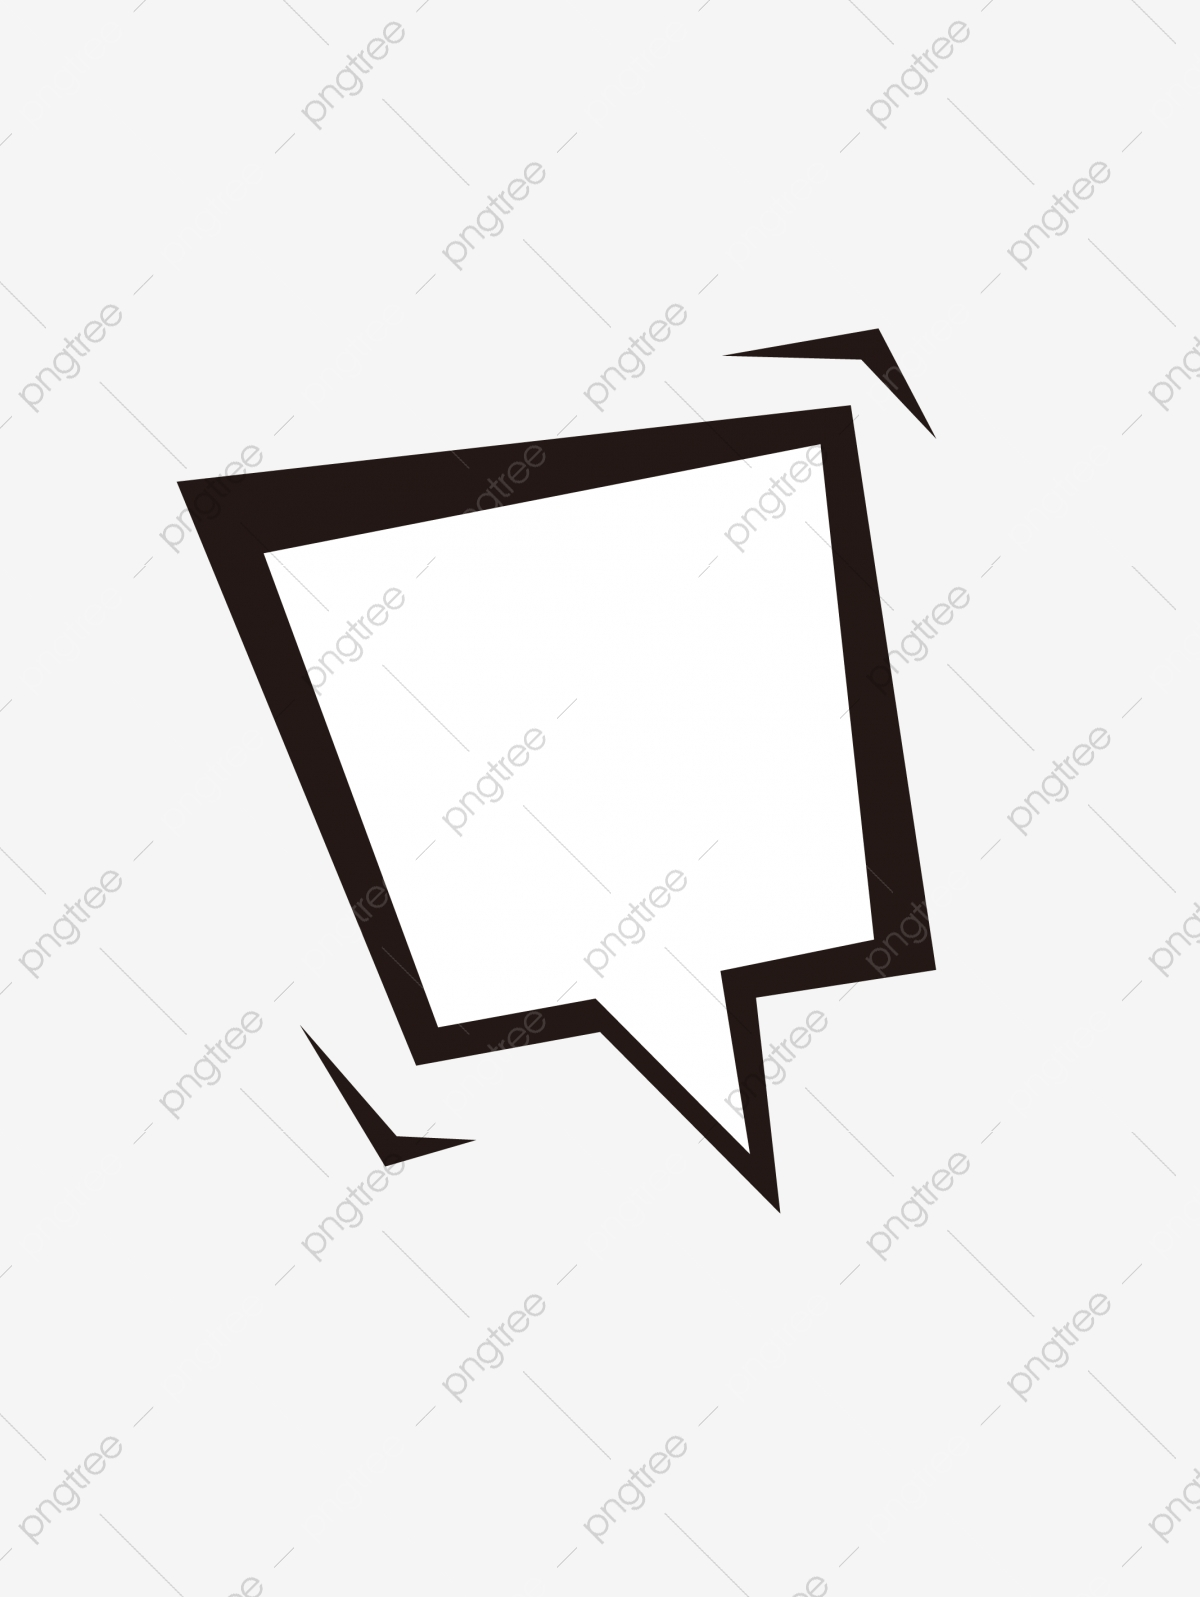 Concise Comic Dialog, Dialog, Frame, Comic Box PNG and